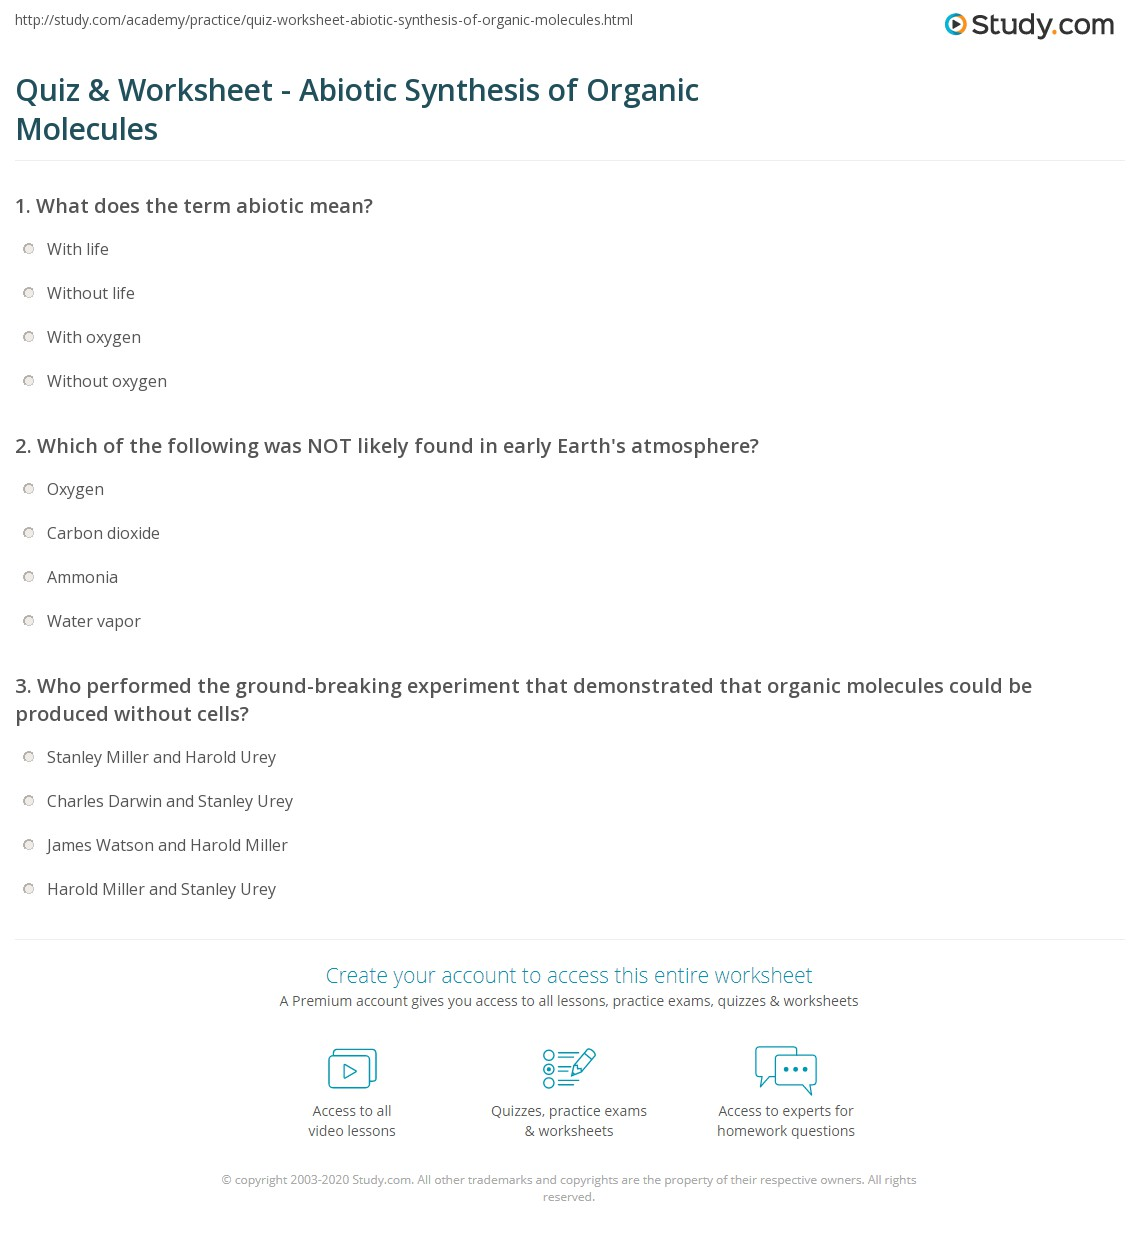 Quiz Worksheet Abiotic Synthesis Of Organic Molecules Study